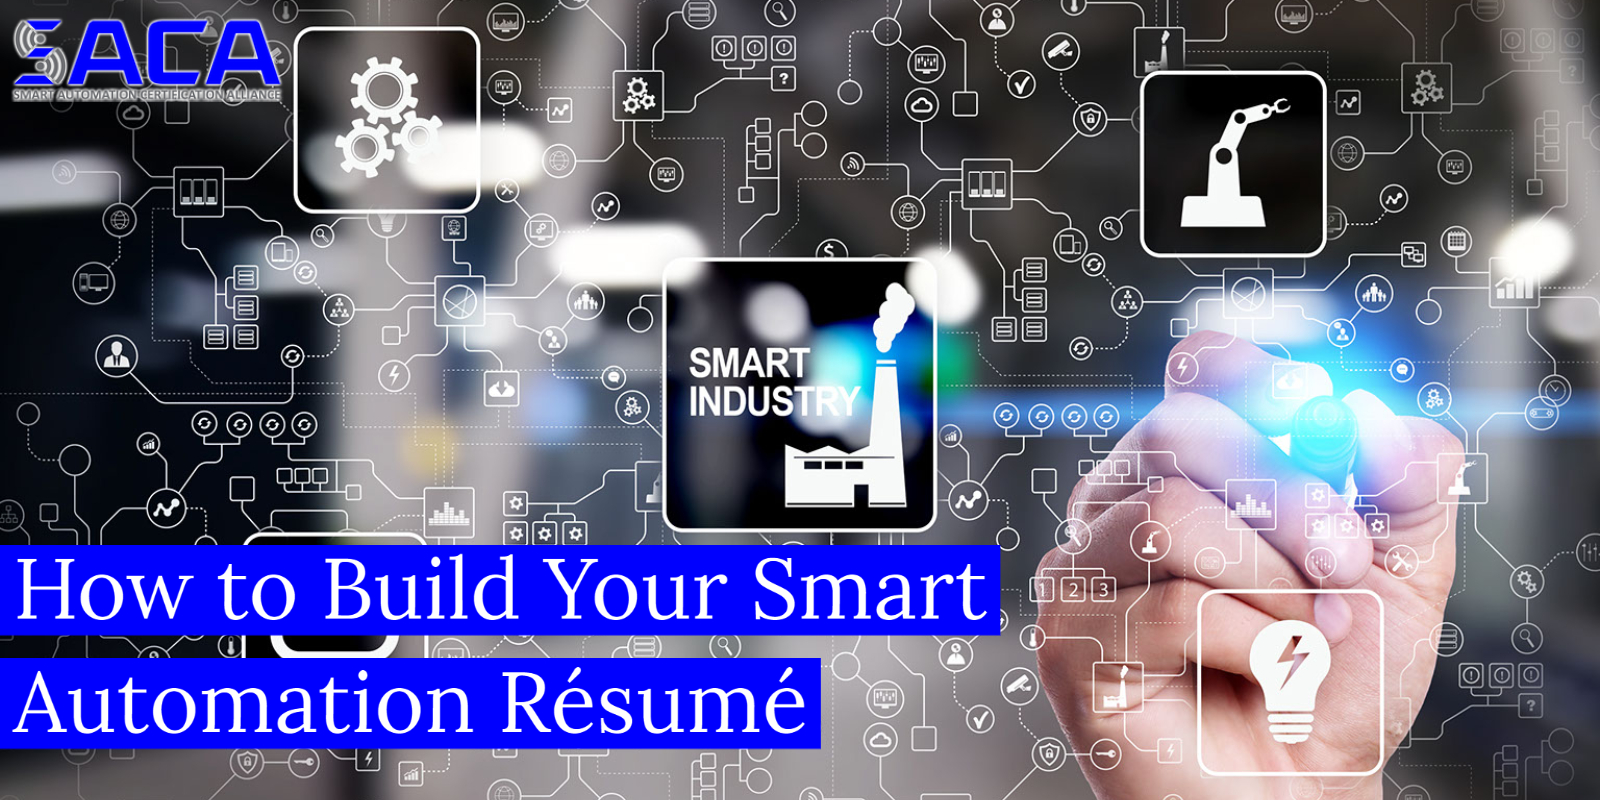 4 Helpful Tips on How to Build a Smart Automation Résumé